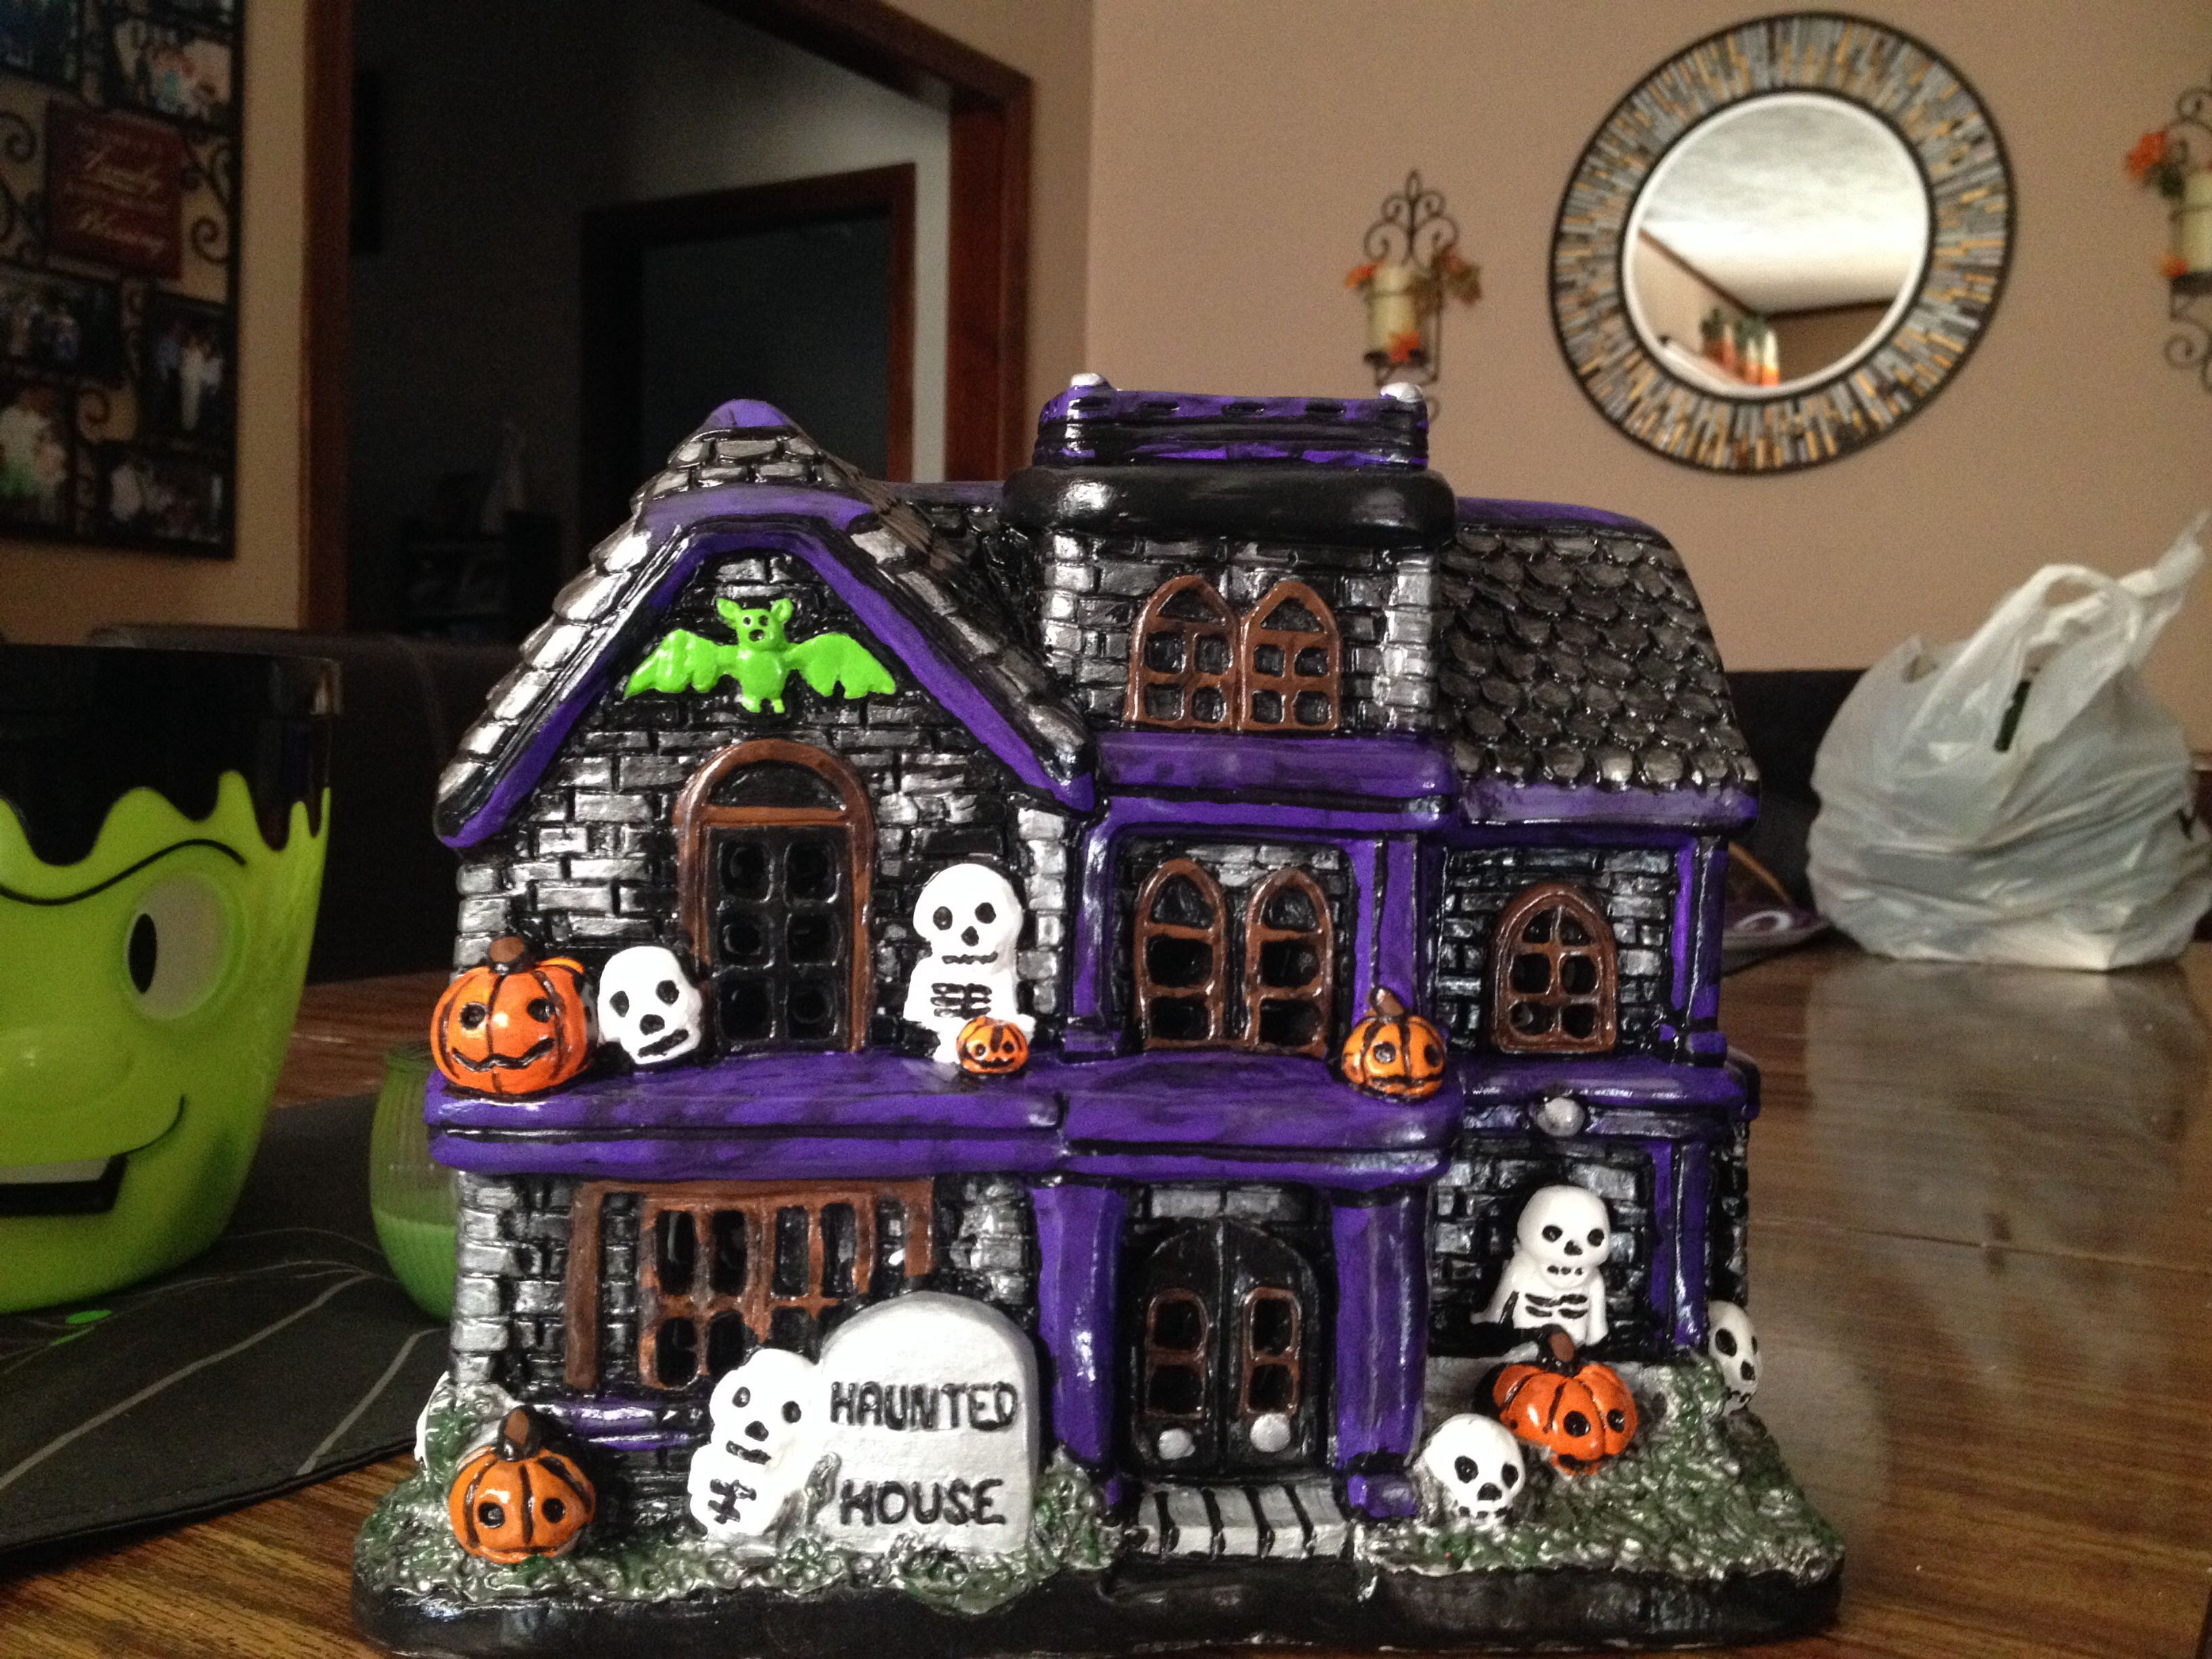 Haunted house diy ceramics i have painted pinterest for Ceramic house paint